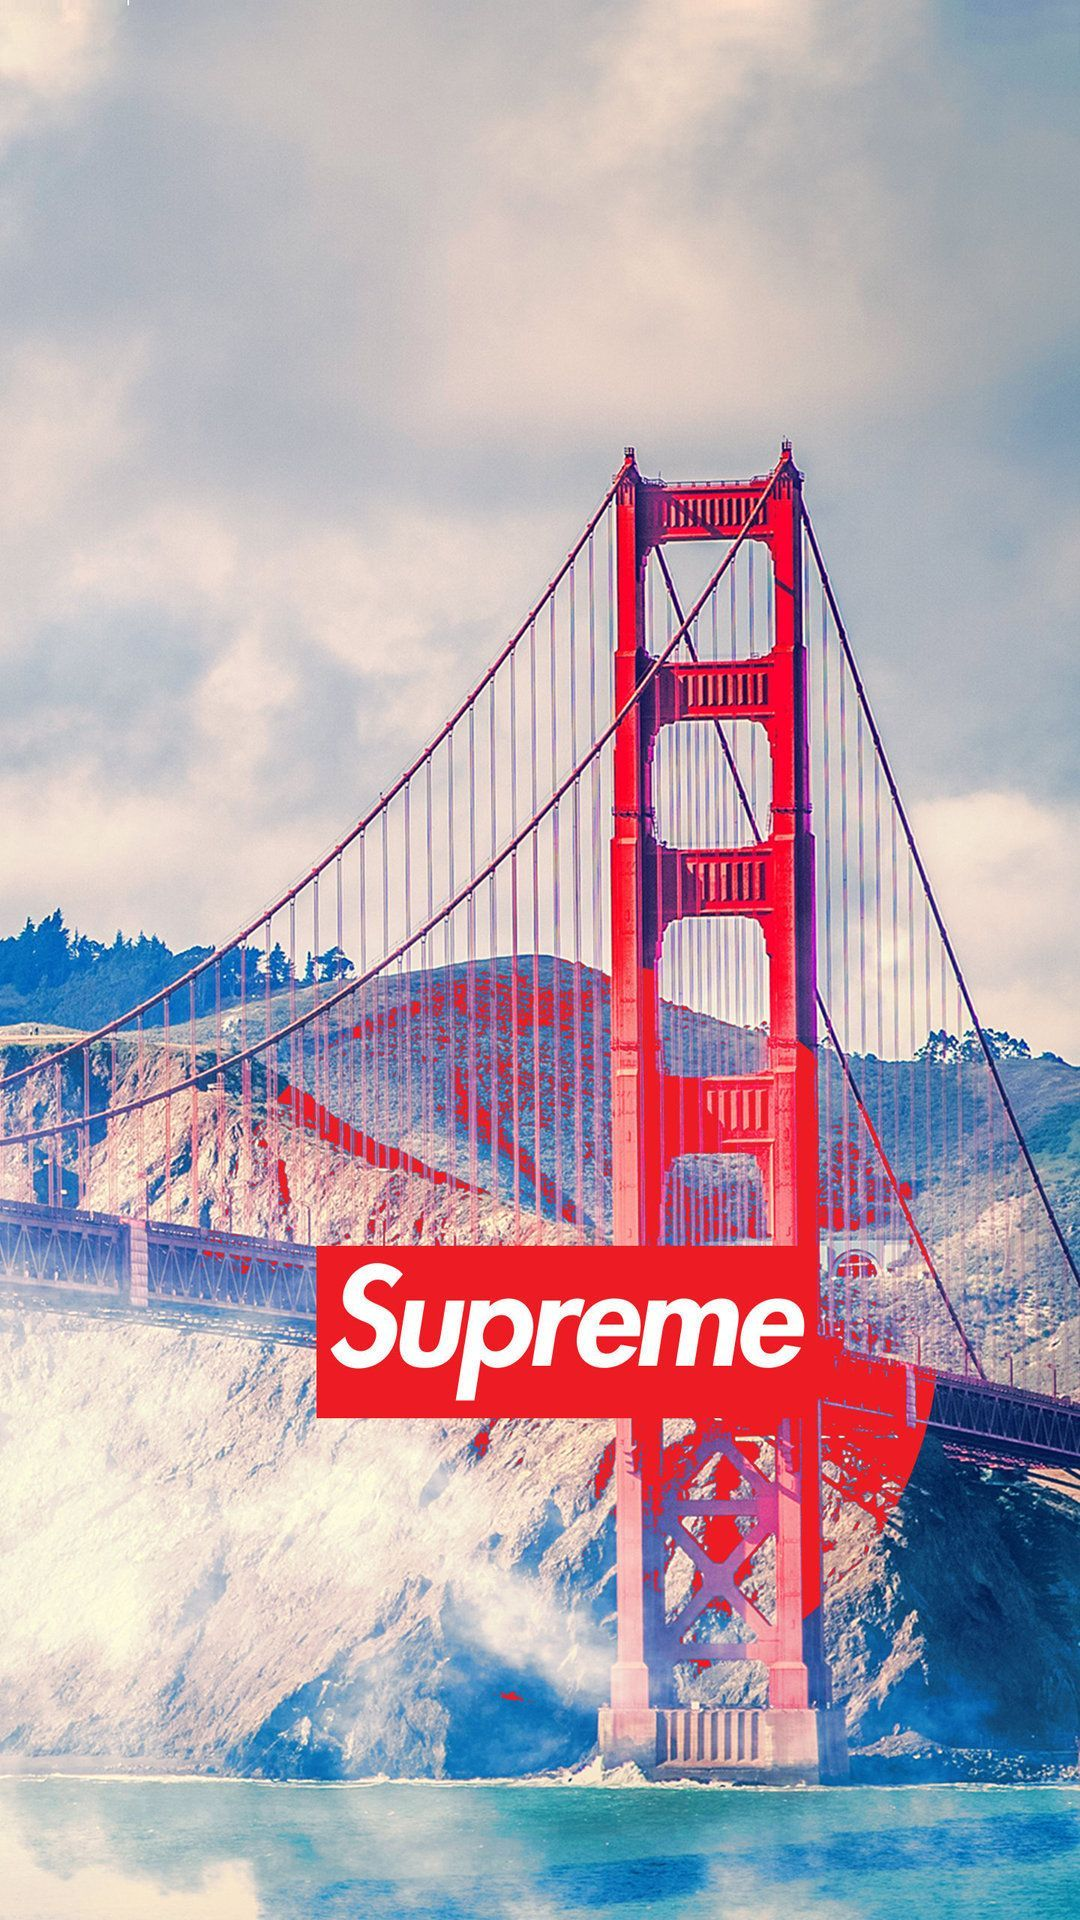 1080x1920 Download san francisco supreme 1080 x 1920